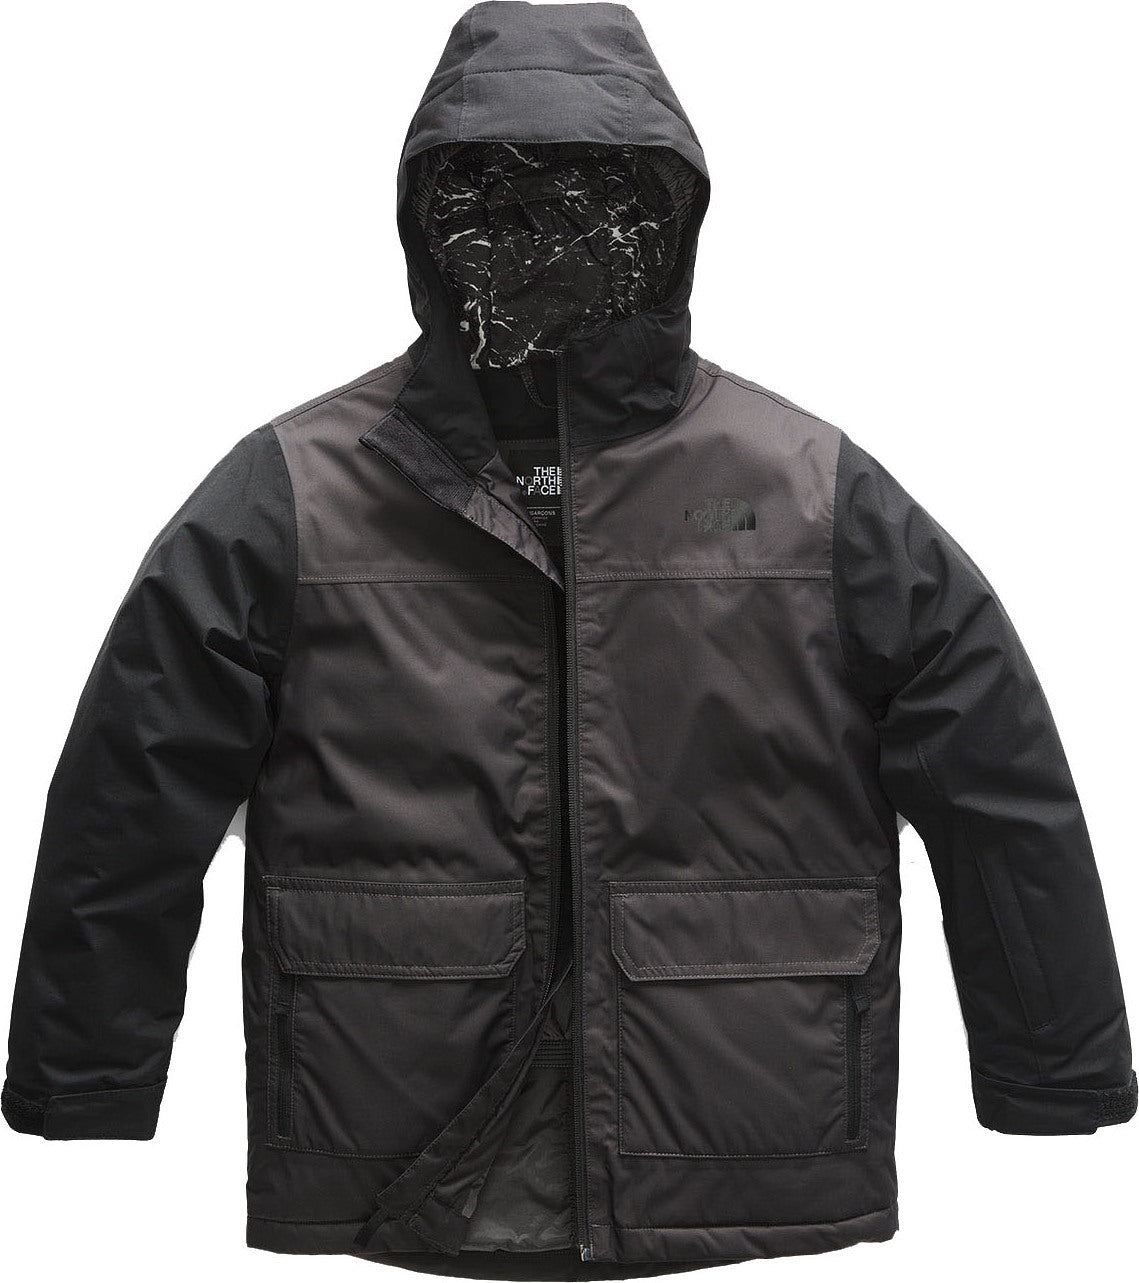 c9f7bdf92 The North Face Boy s Freedom Insulated Jacket